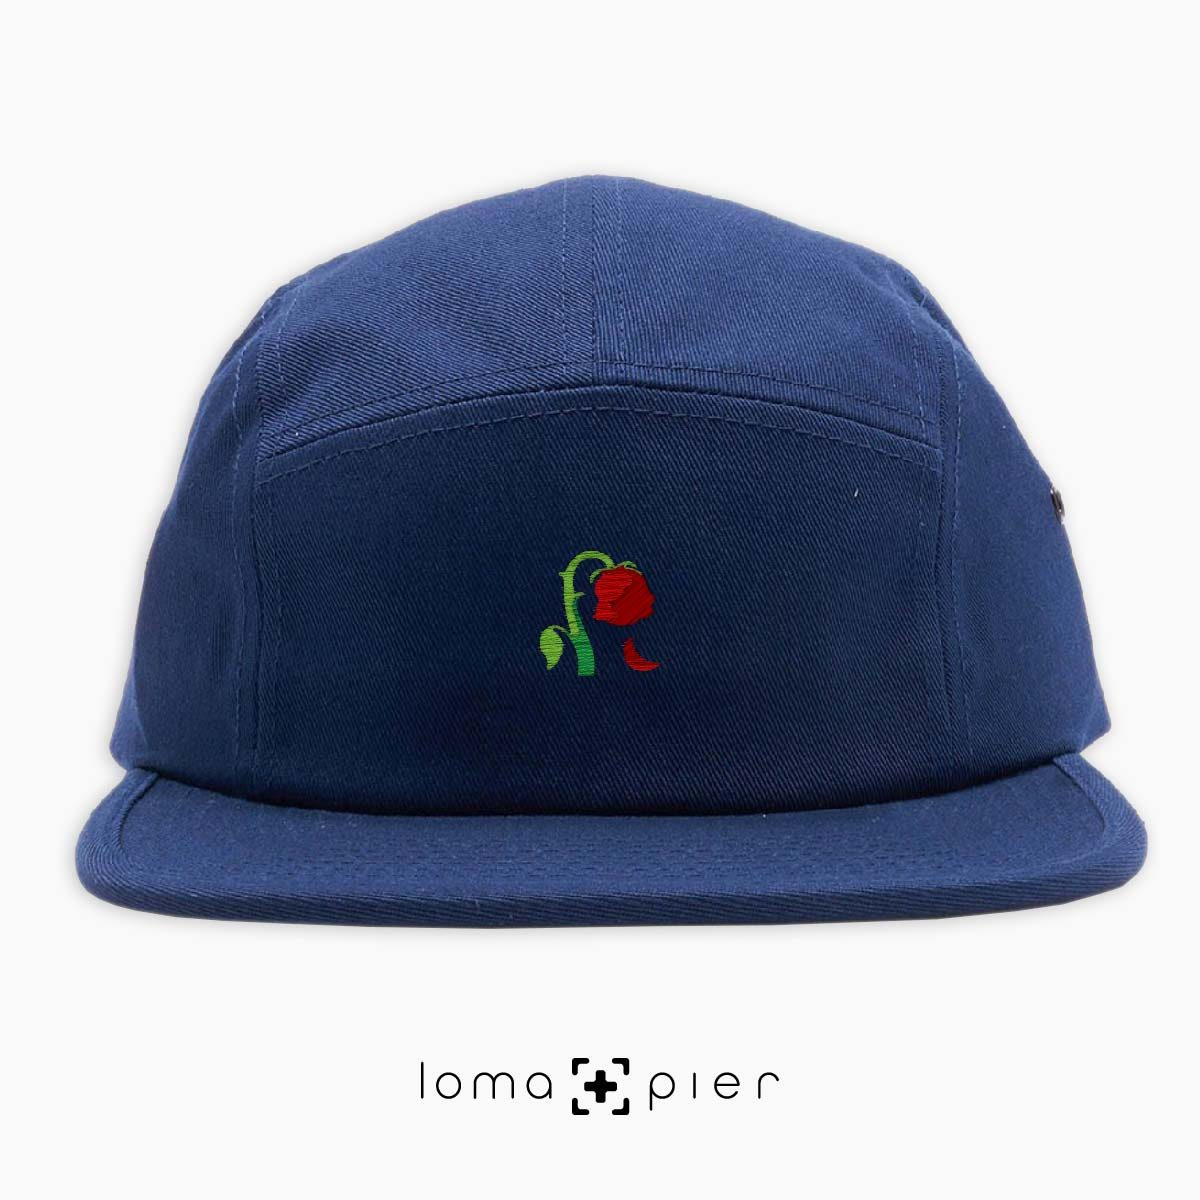 DYING ROSE EMOJI icon embroidered on a navy blue cotton 5-panel hat by loma+pier hat store